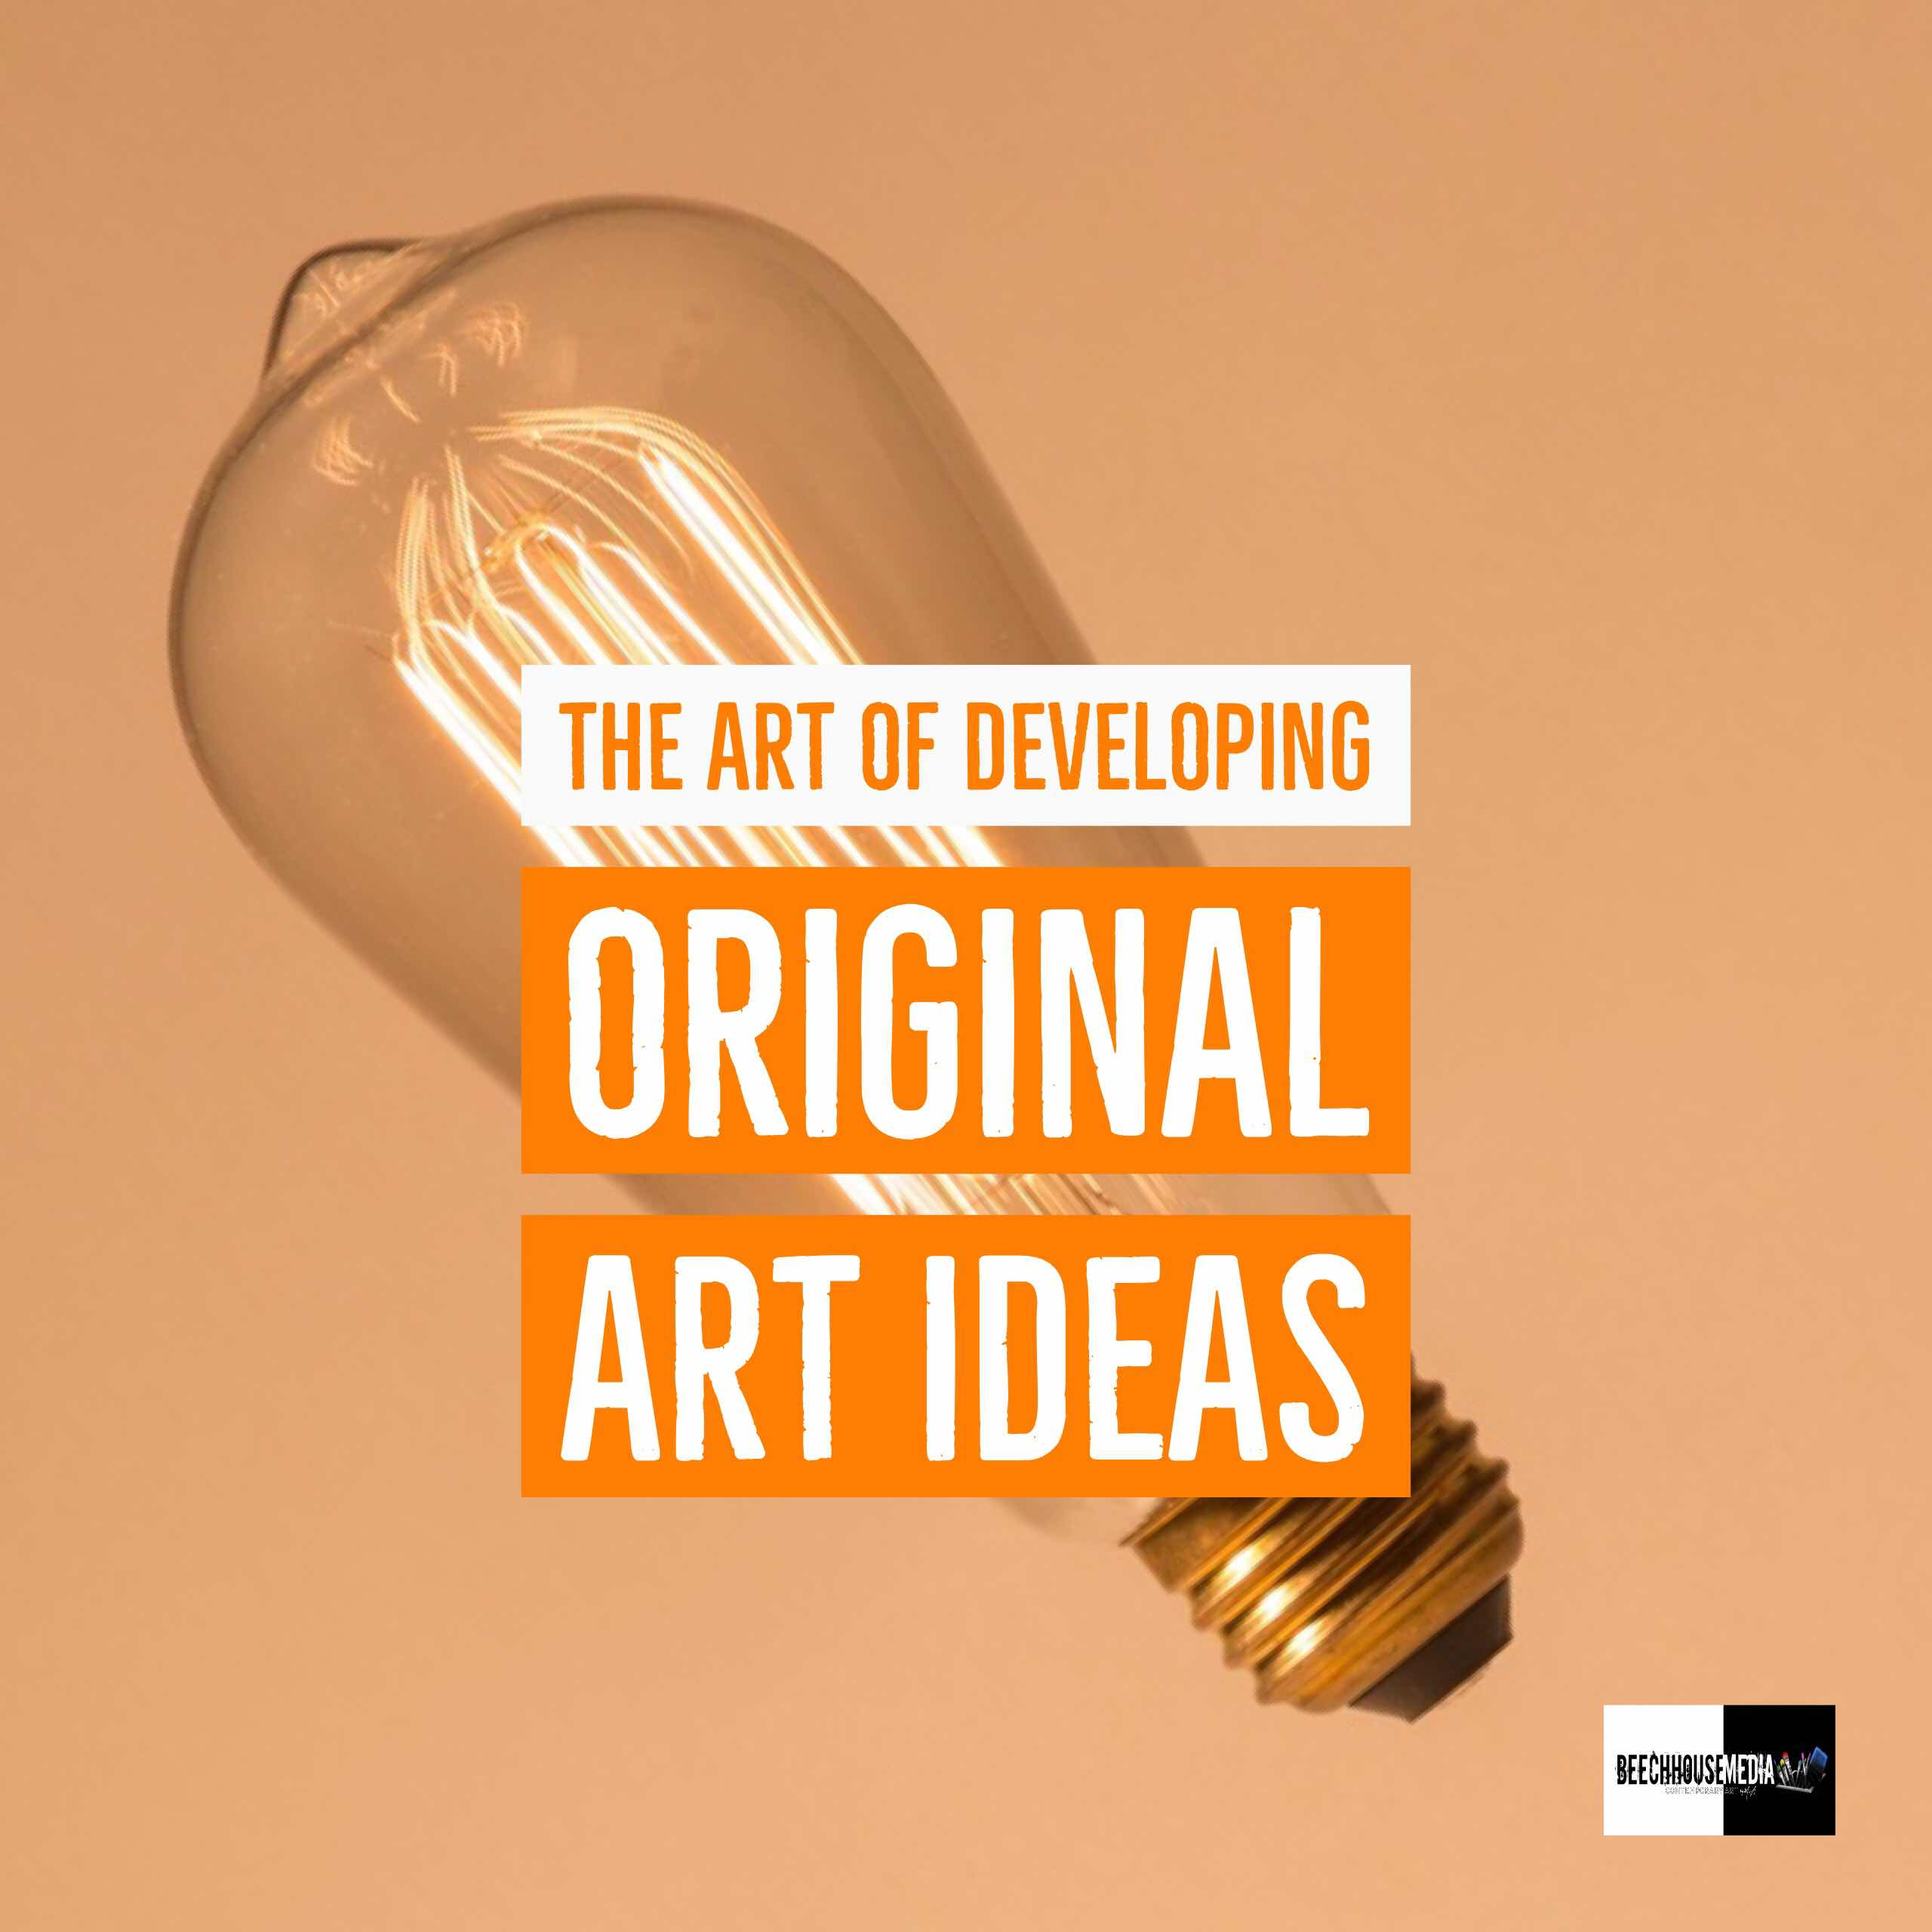 the Art of developing Original art ideas